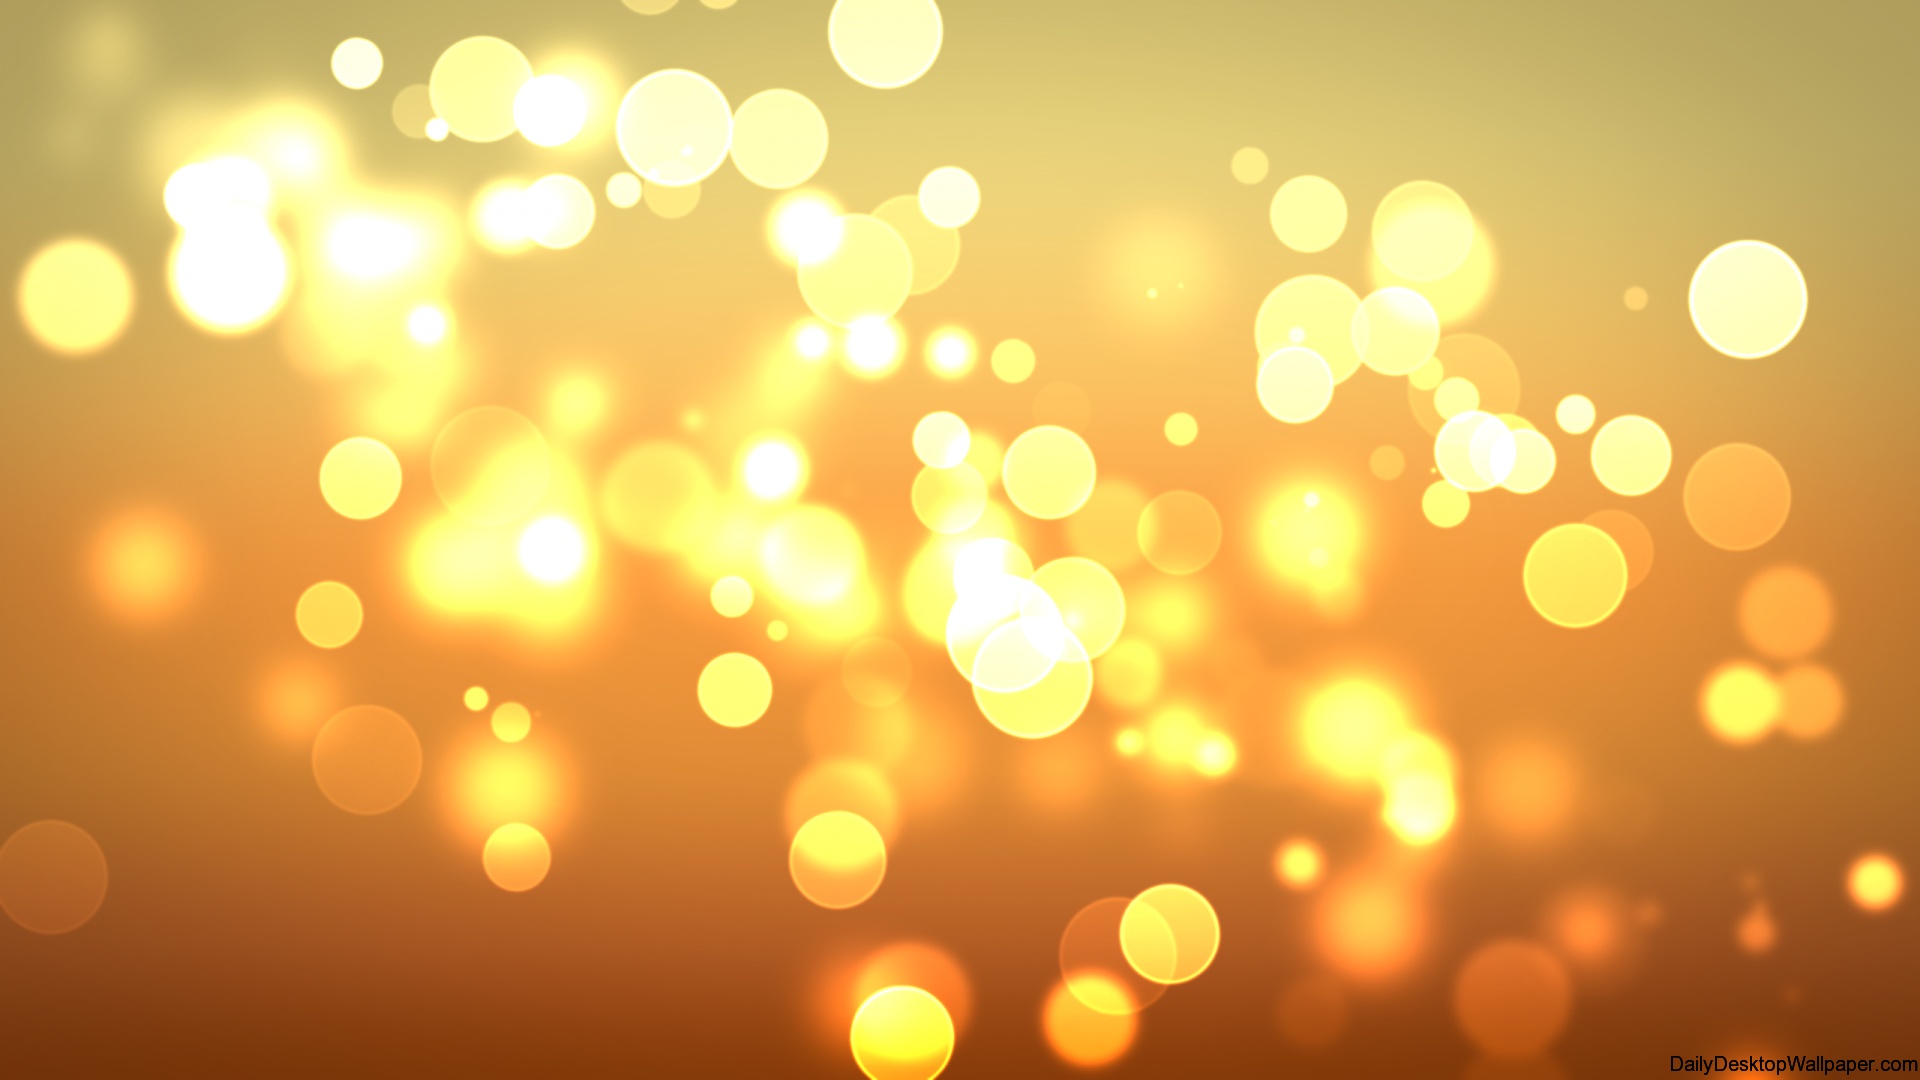 Light Wallpaper HD